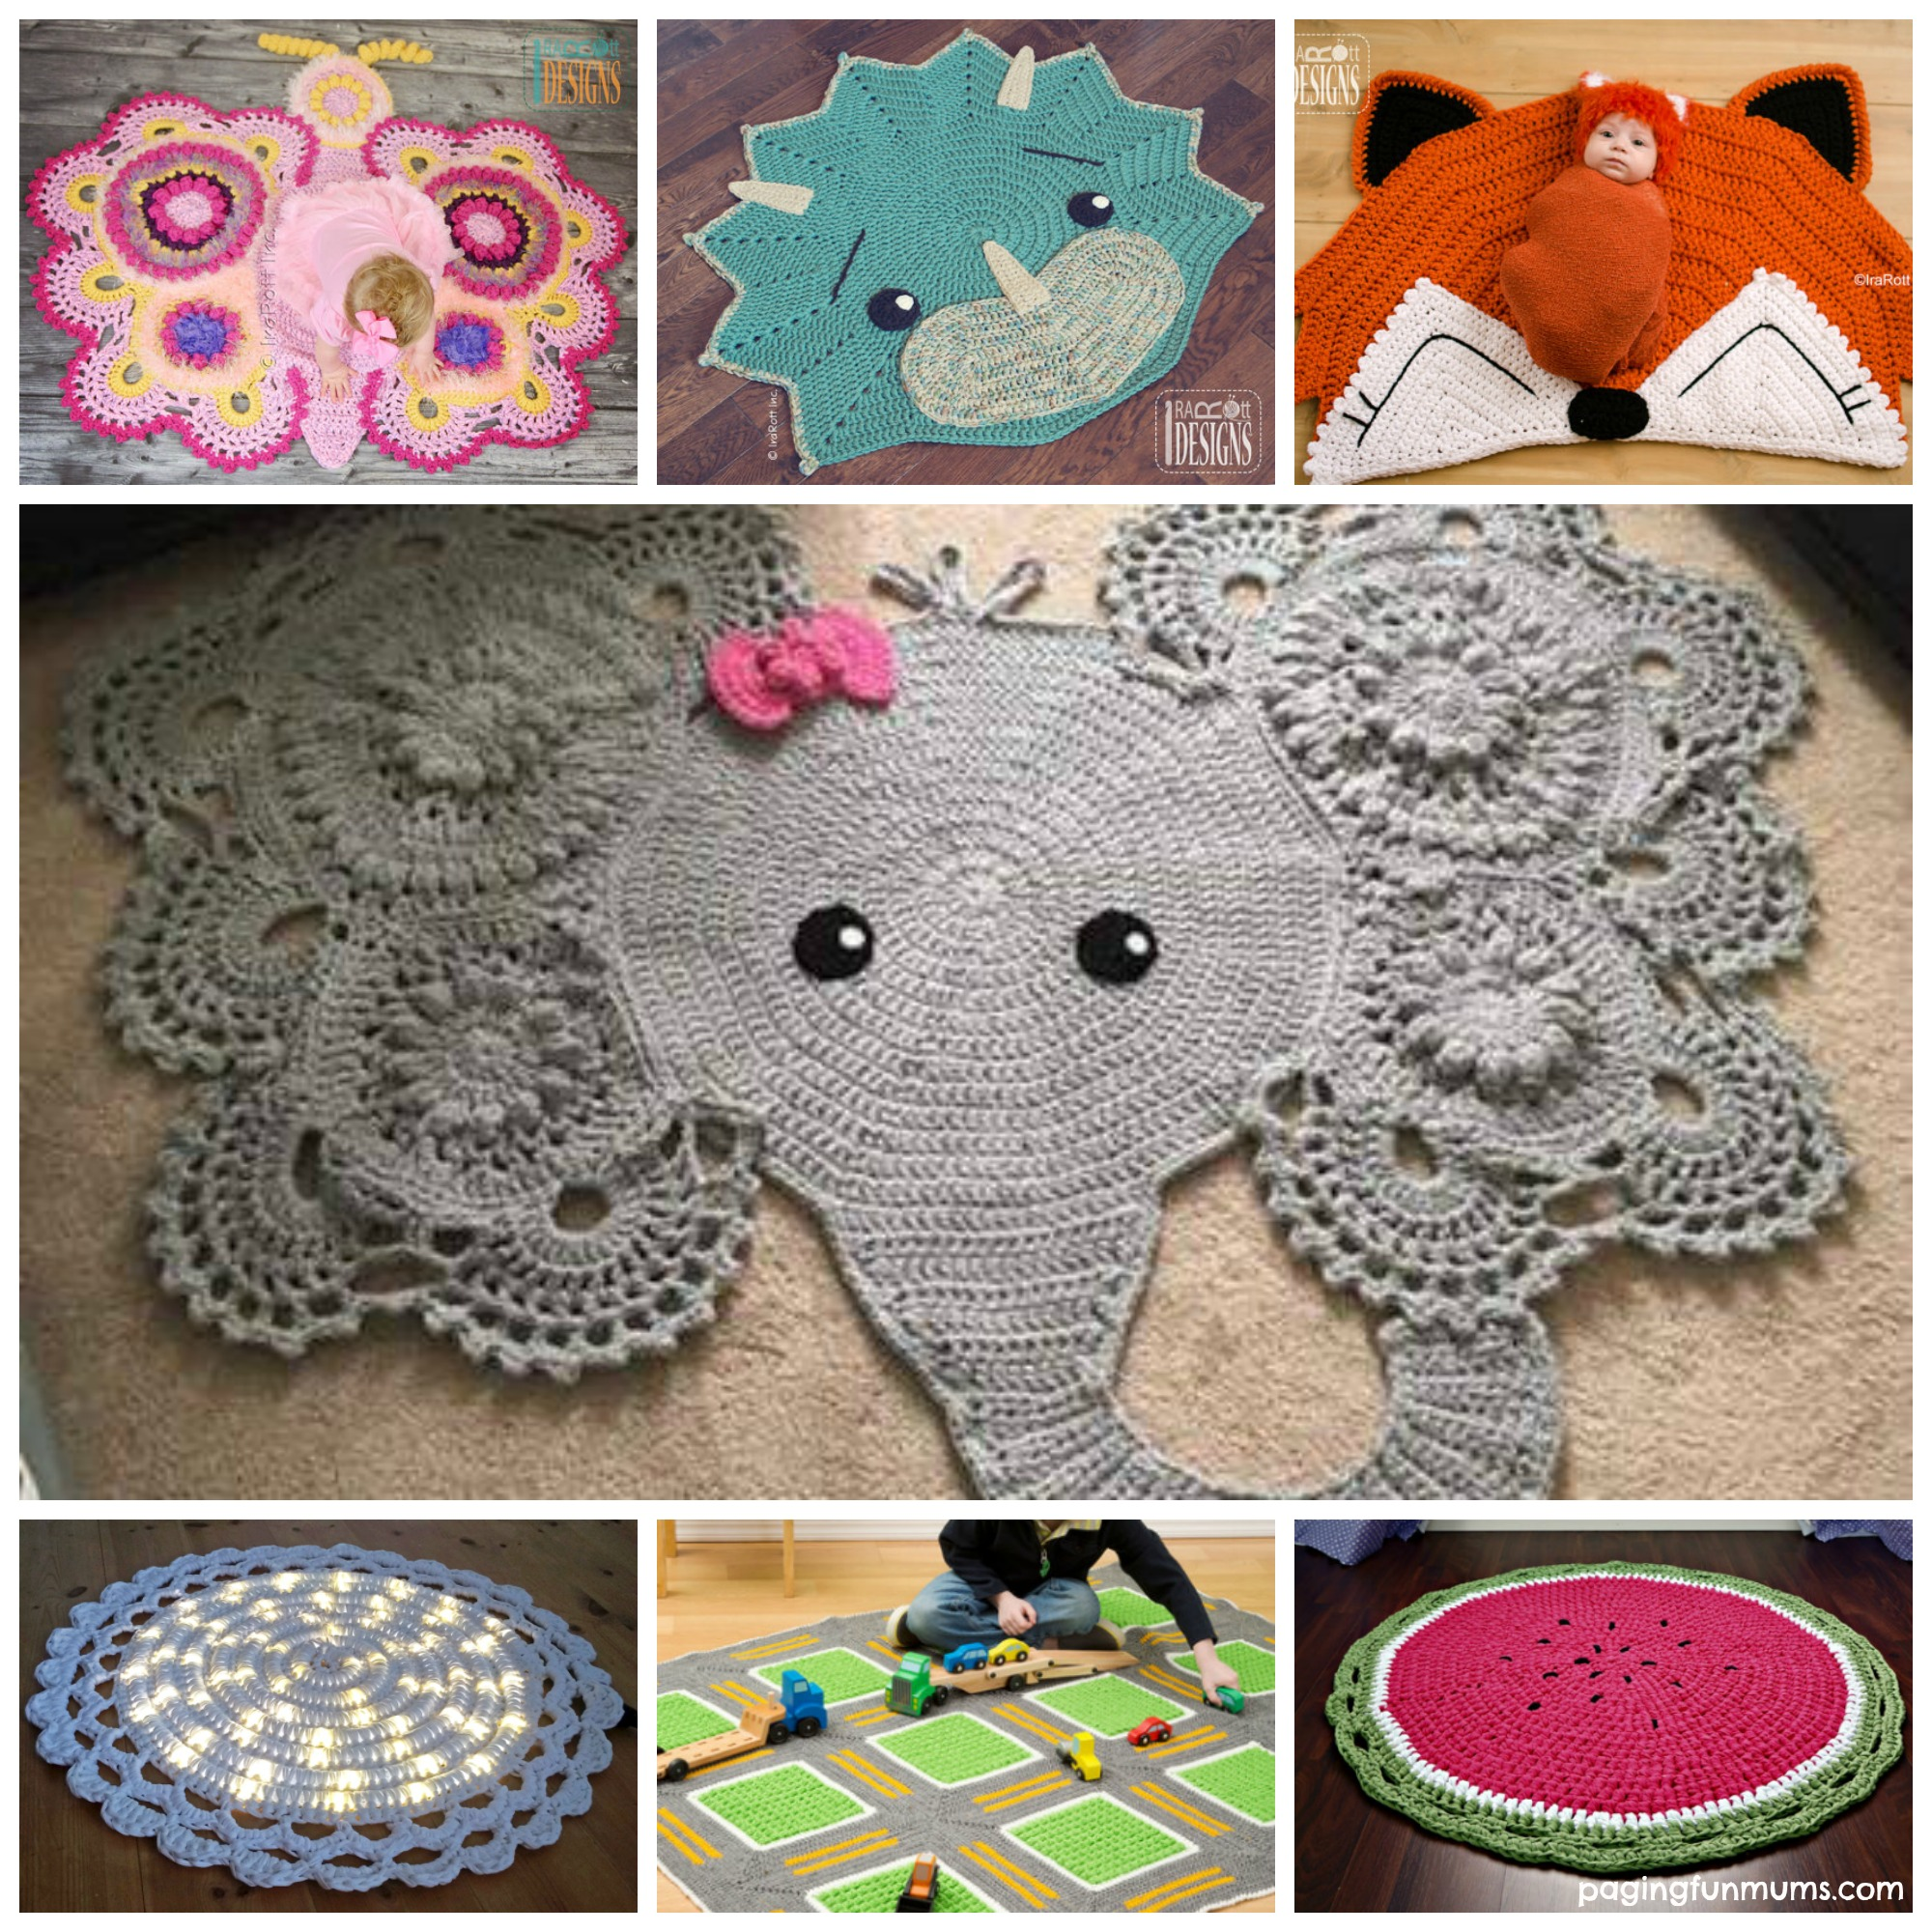 Crochet Patterns Free Rugs : Clever Crochet Throw Rugs - Paging Fun Mums